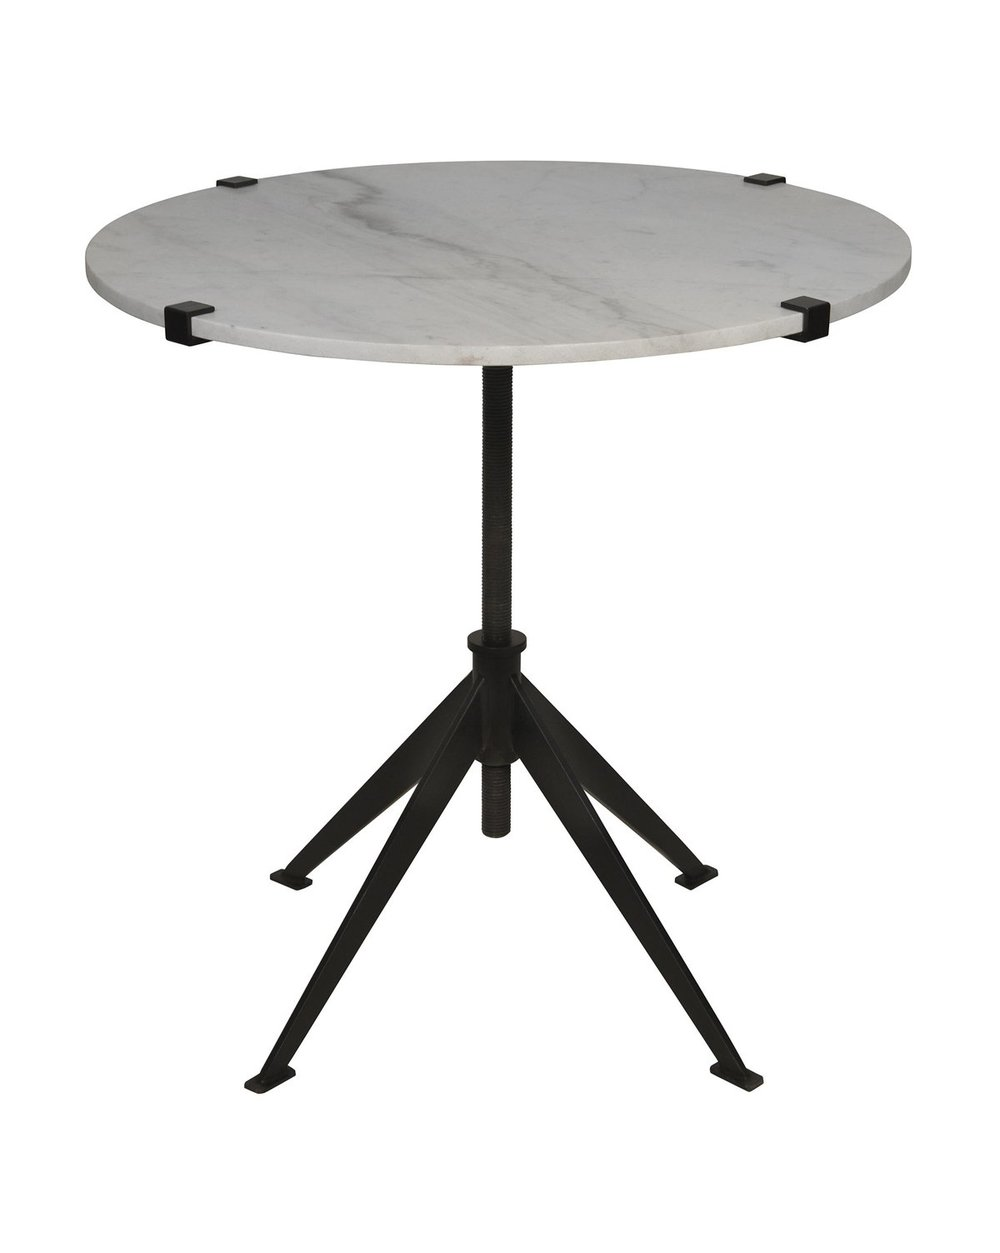 Devyn_Adjustable_Side_Table_1_056bea09-88b7-4d0a-a972-34f00bbaa2a1.jpg